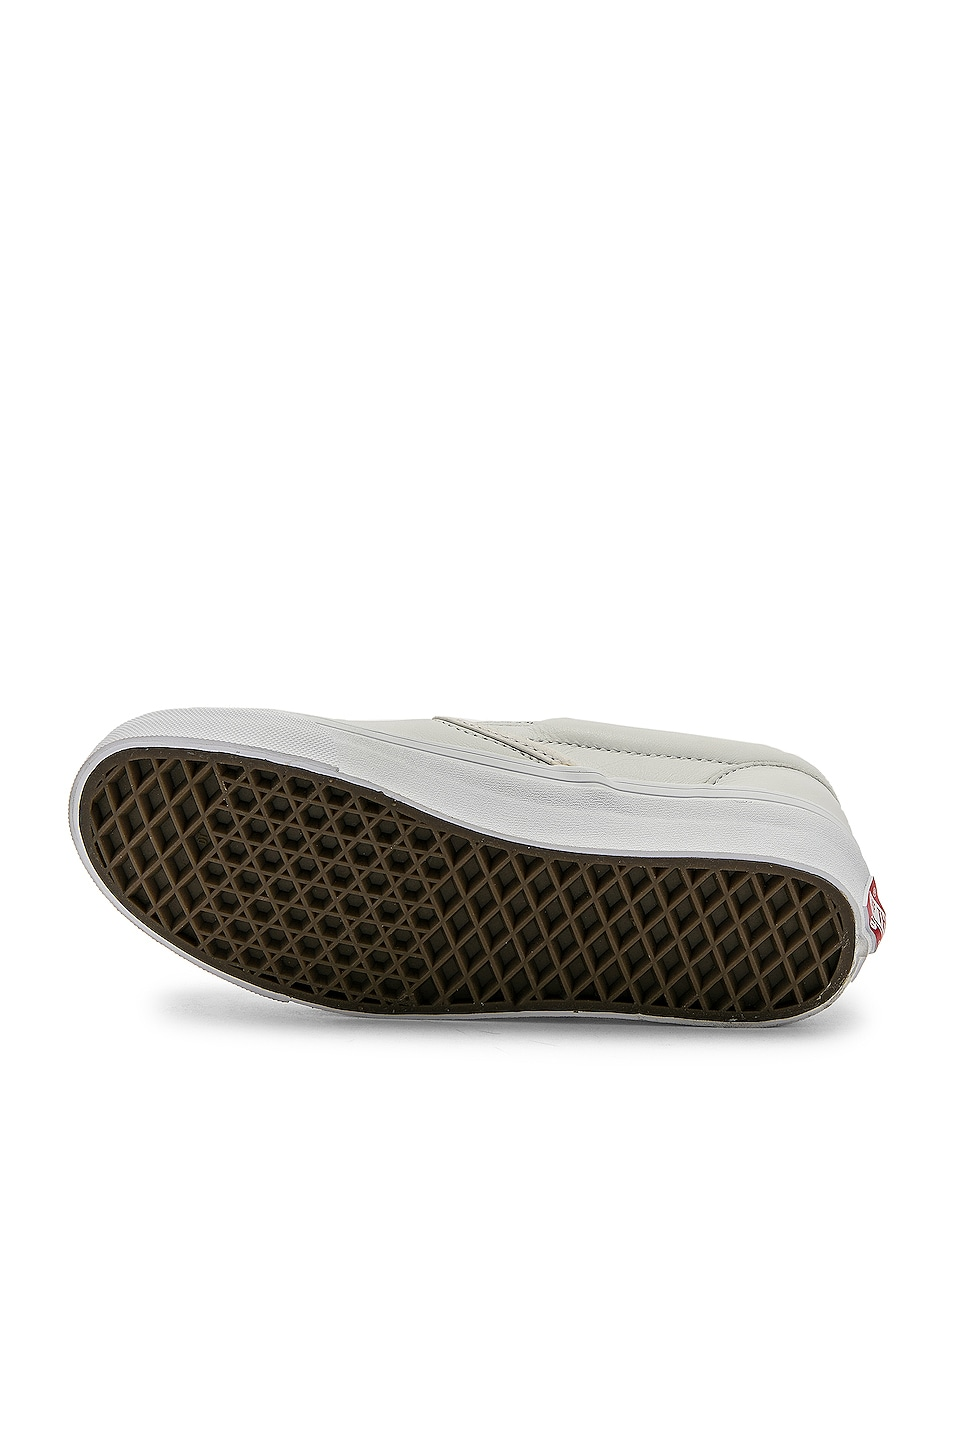 Image 6 of Vans Vault OG Classic Slip-On LX in White